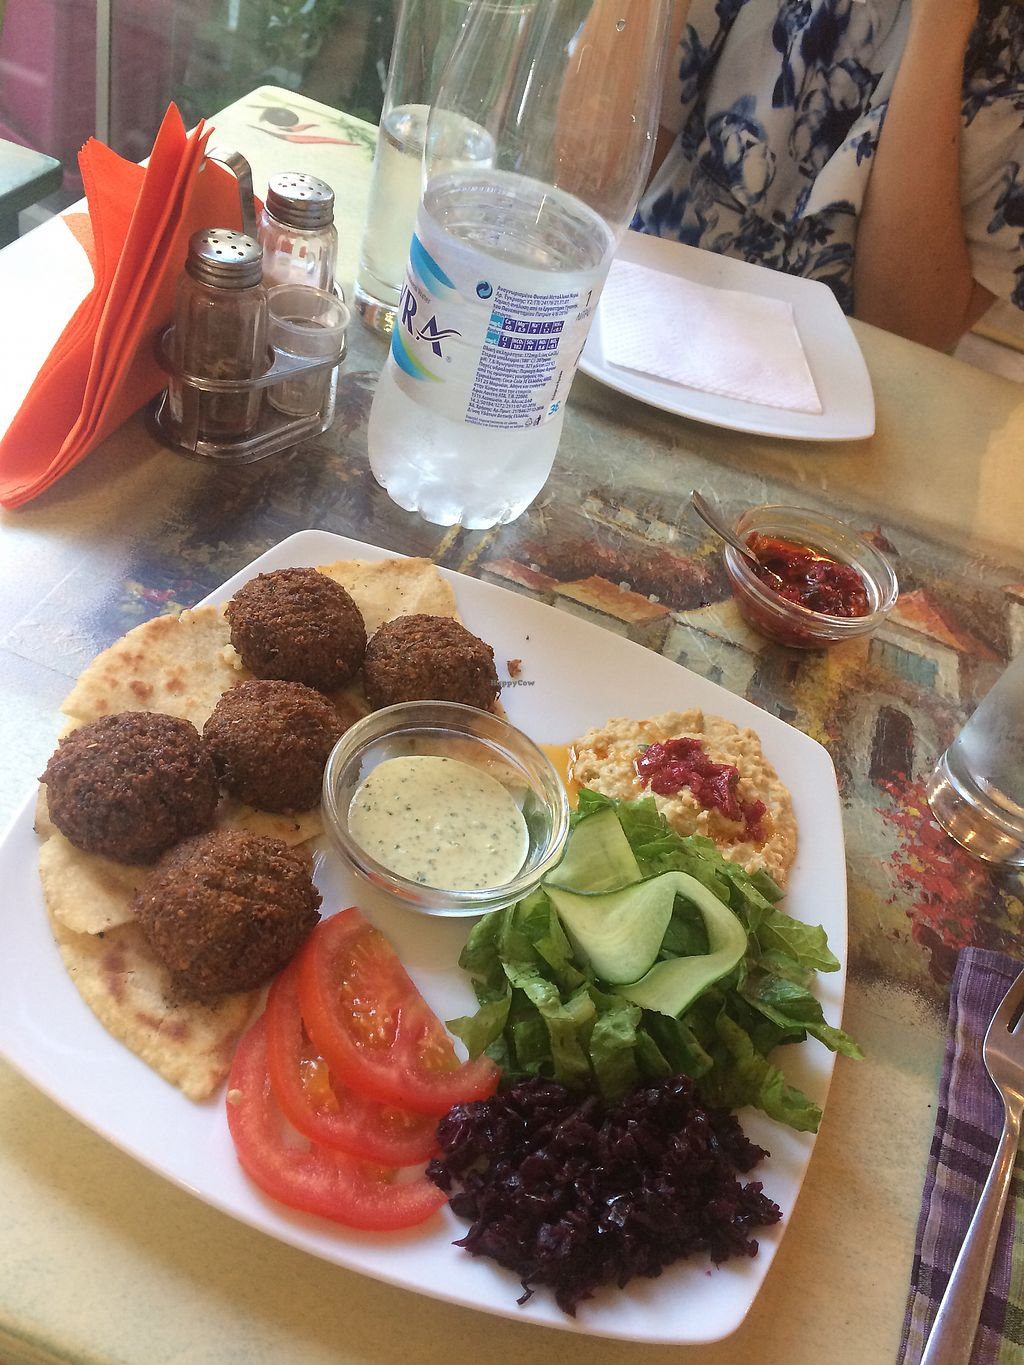 "Photo of Art of Falafel  by <a href=""/members/profile/AmieCraxton"">AmieCraxton</a> <br/>Falafel Plate <br/> June 25, 2017  - <a href='/contact/abuse/image/74771/273153'>Report</a>"